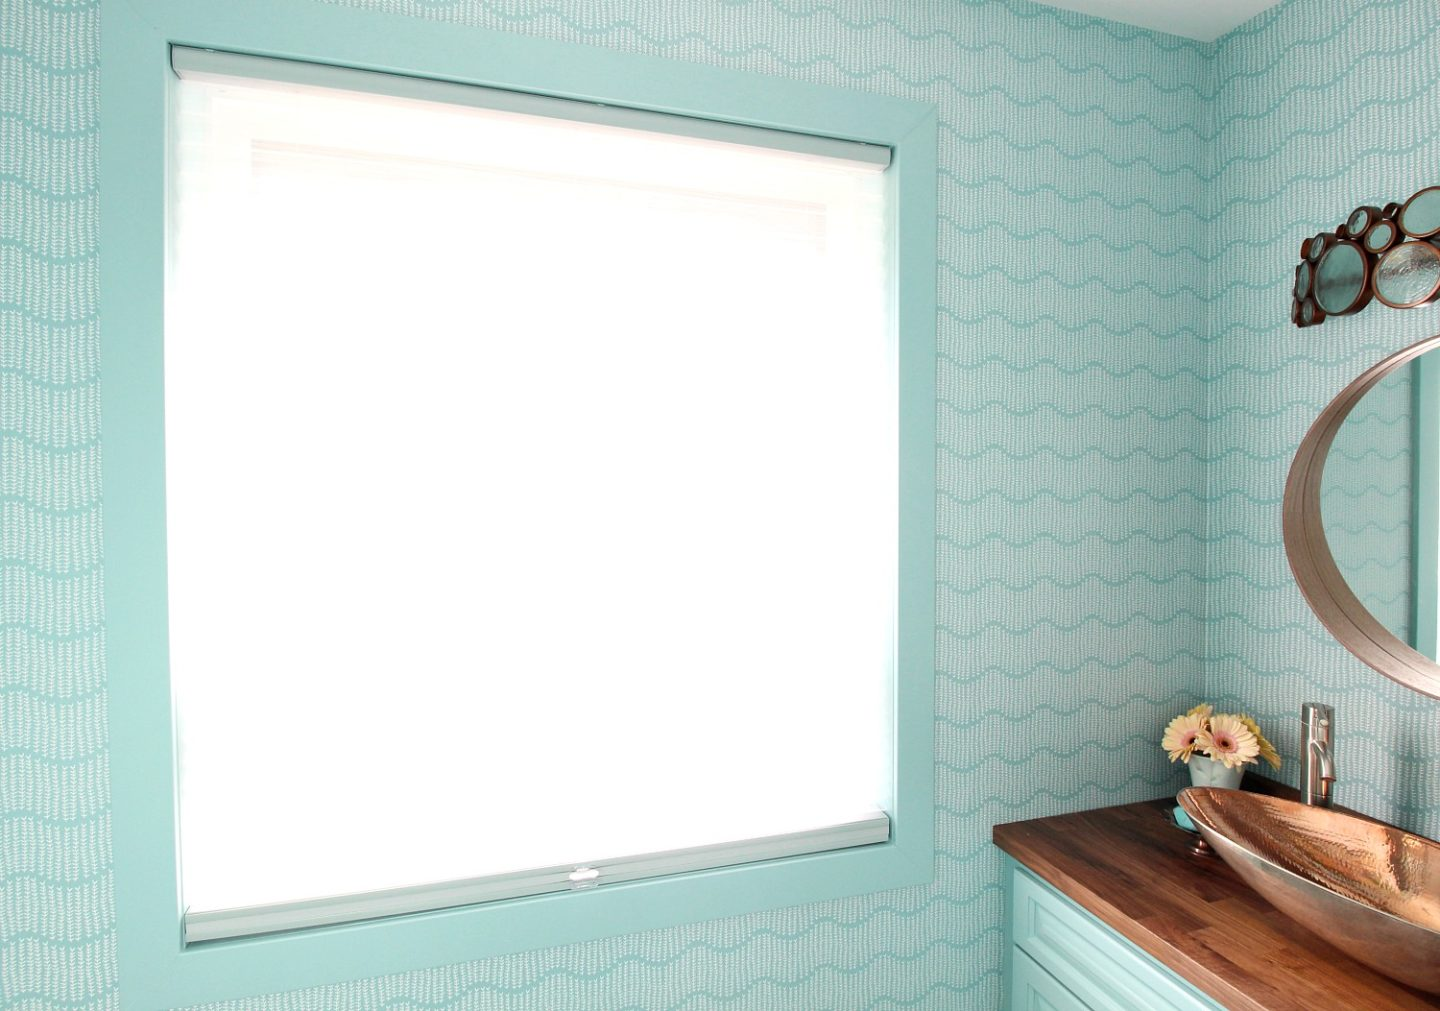 Trim Painted Aqua to Match Wallpaper